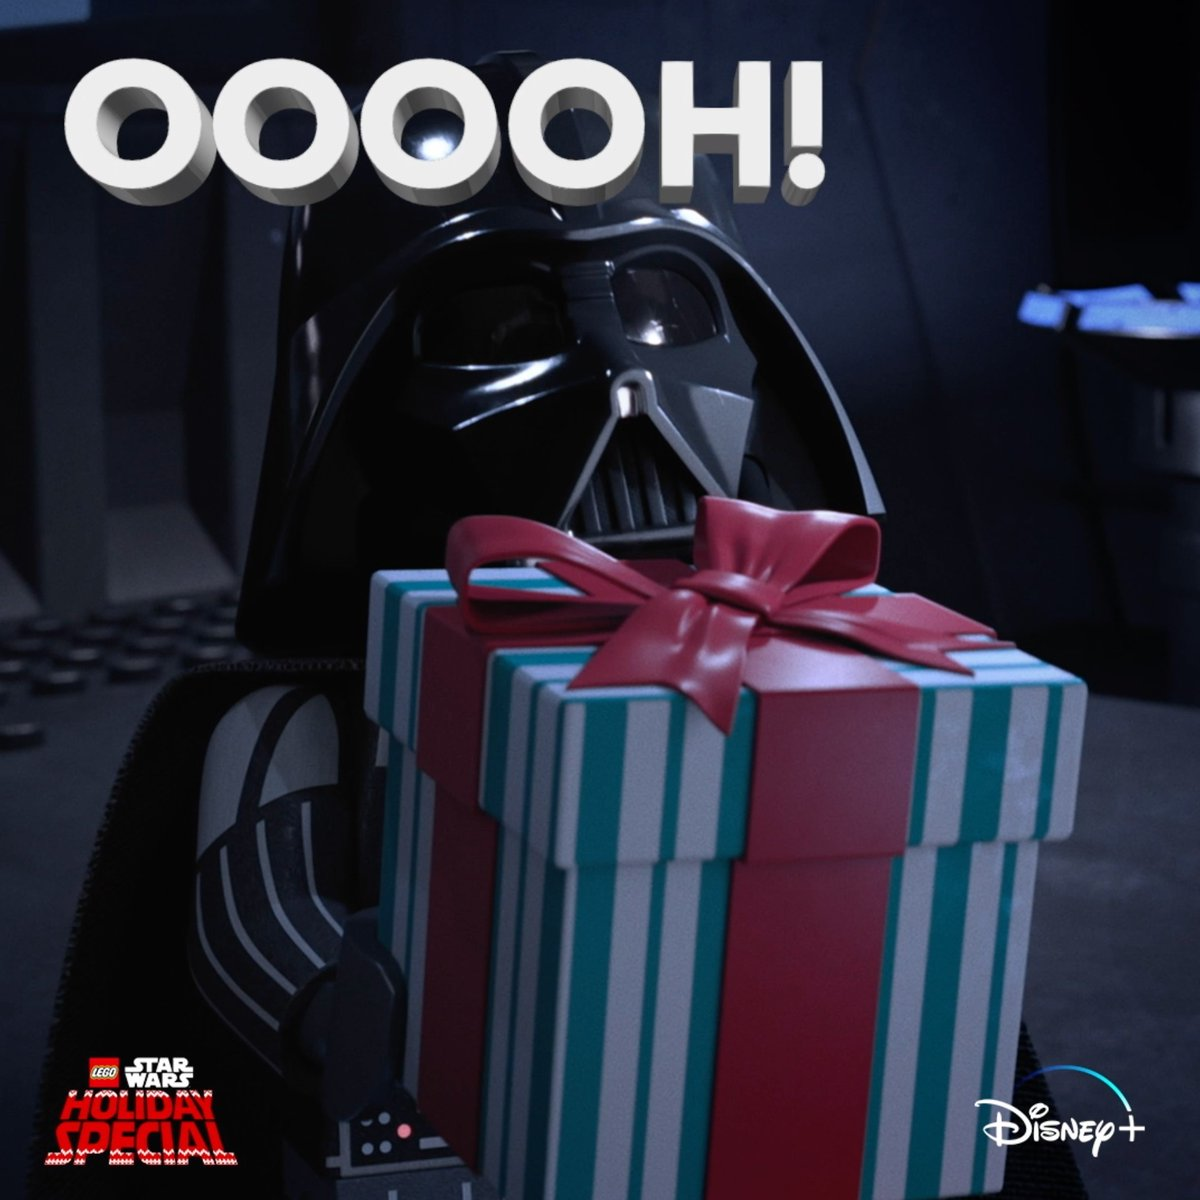 Unwrap something special! The LEGO Star Wars Holiday Special is now streaming on #DisneyPlus.